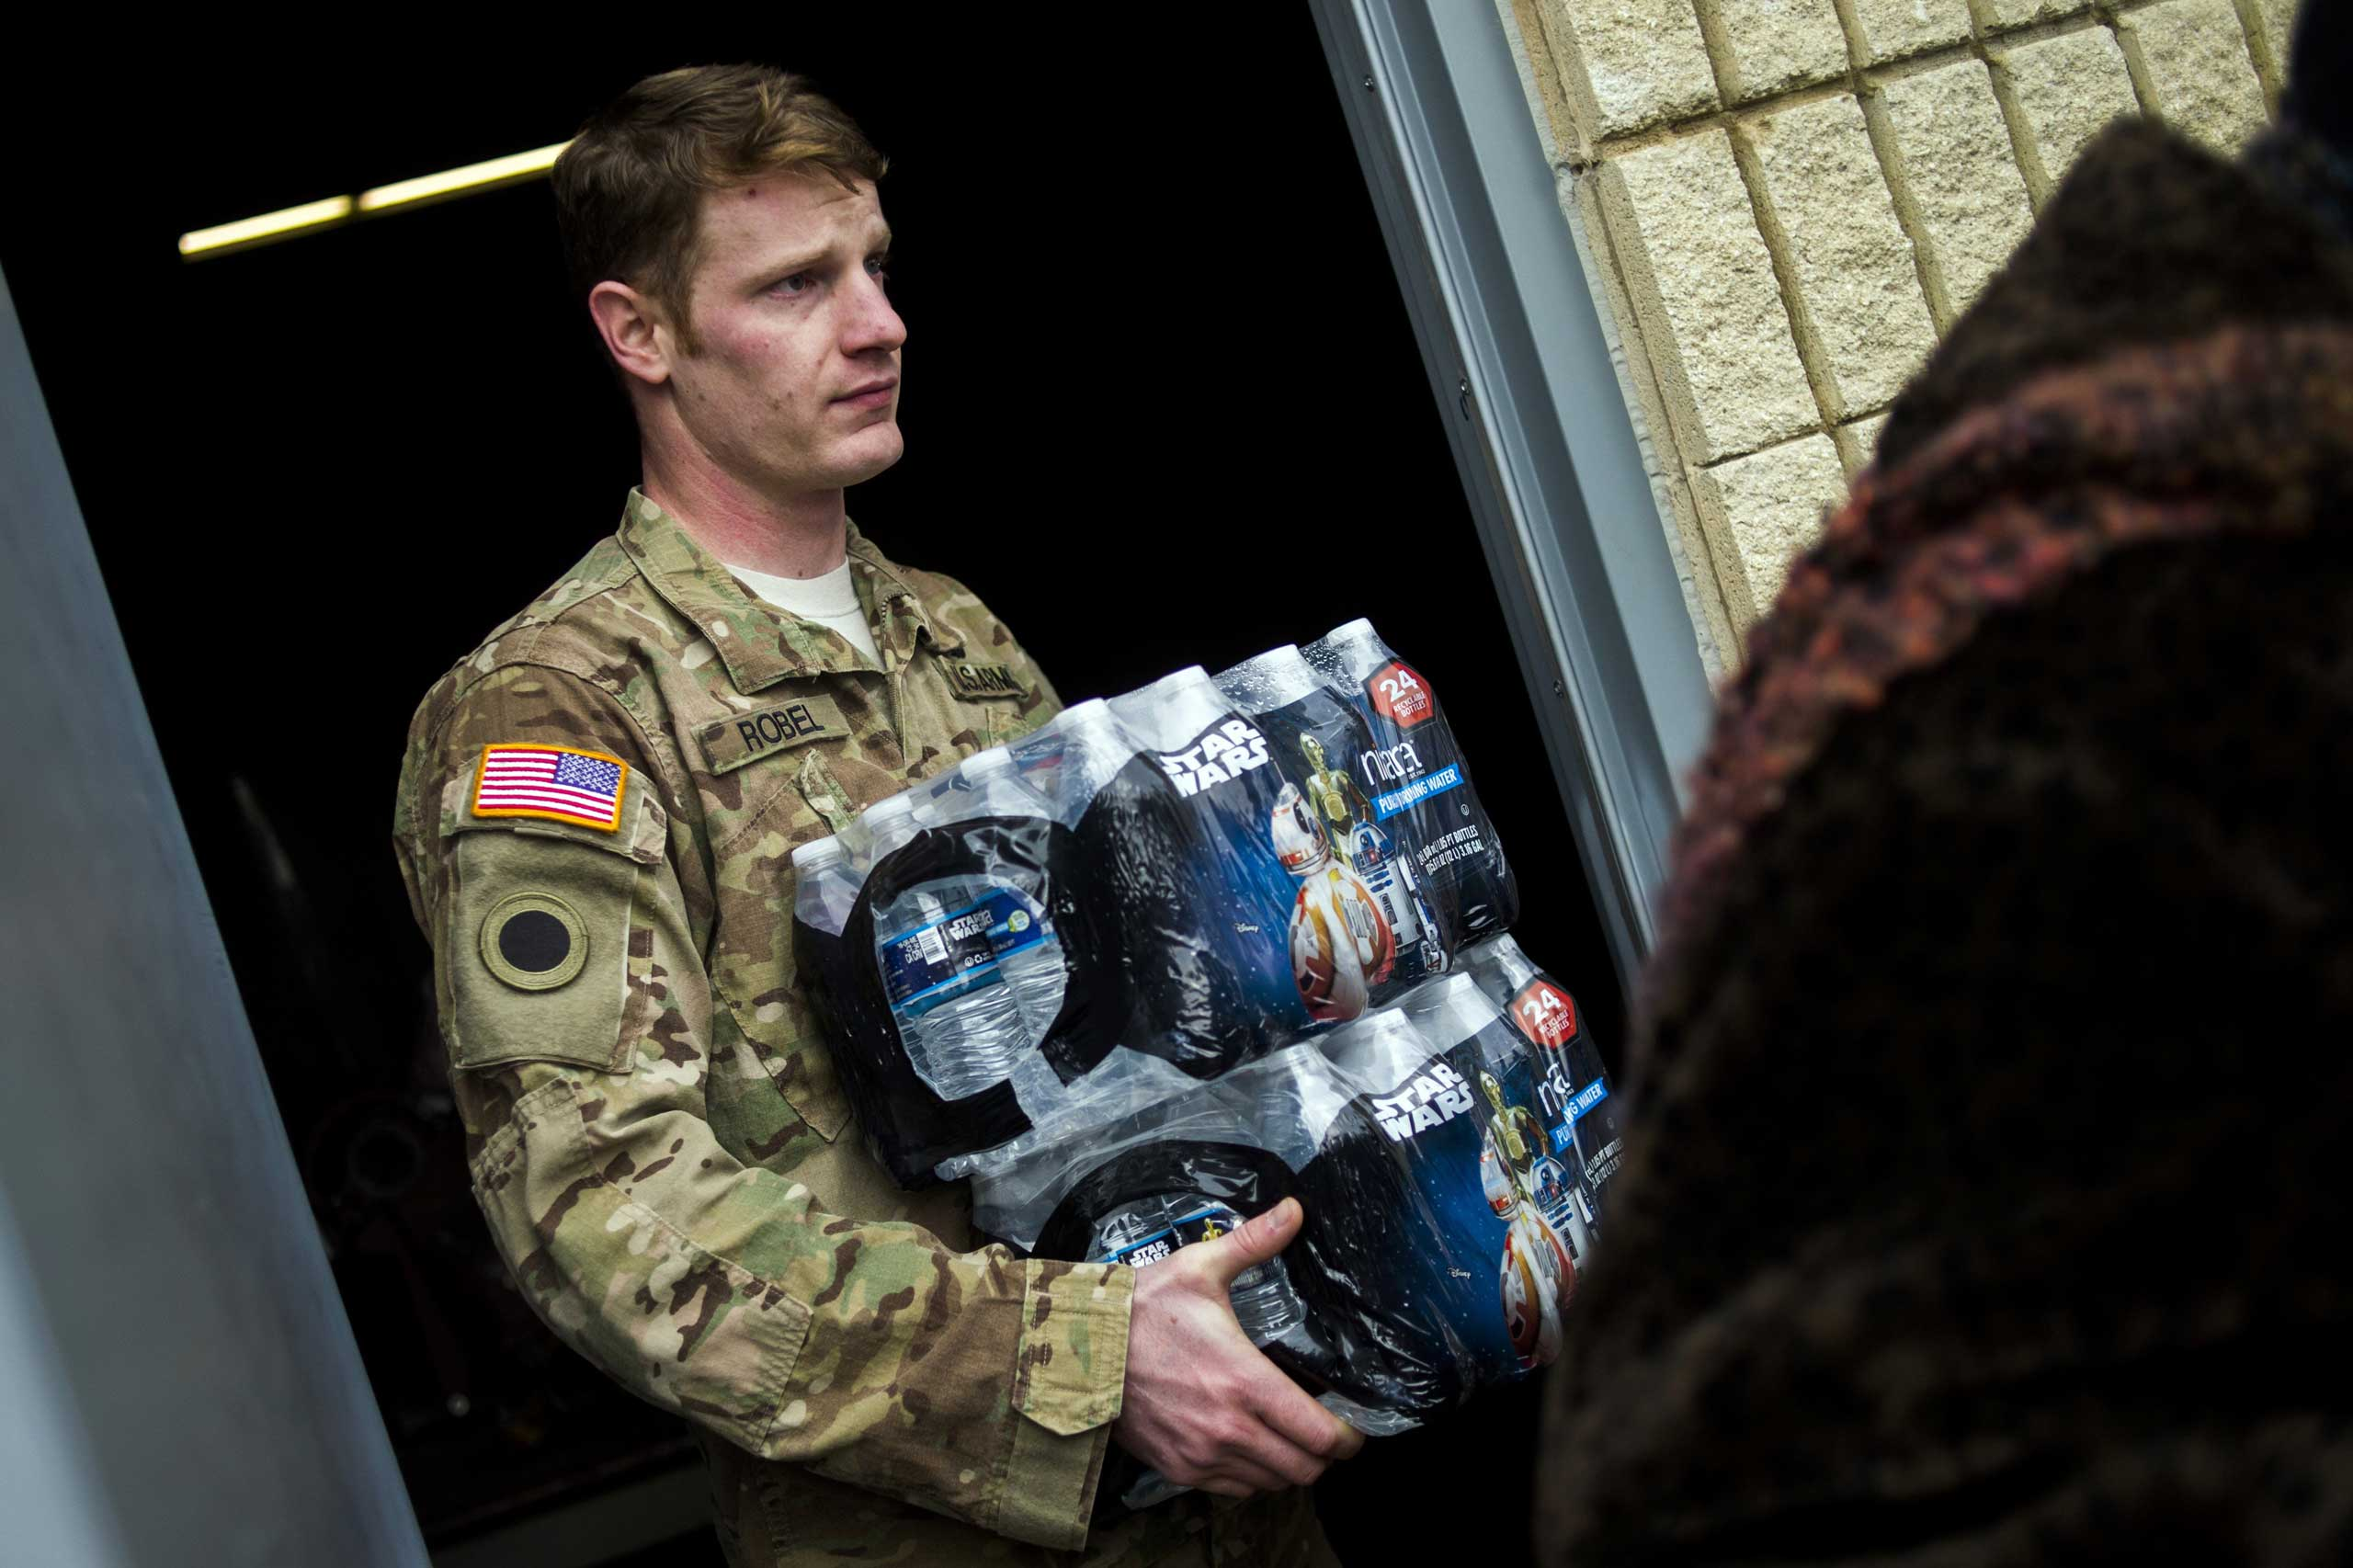 Michigan National Guard Staff Sgt. Stephen Robel helps carry a case of water to the vehicle of Flint resident Karand Houston as the first seven Michigan National Guard soldiers arrive on the ground at fire stations on Jan. 13, 2015 throughout Flint. They were assigned by Gov. Rick Snyder on Tuesday to help distribute water and relieve residents in relation to the Flint water crisis. Safe drinking water has not flowed from many Flint faucets for almost two years, after the state-run city switched its source to the highly corrosive Flint River and failed to treat it properly to protect lead from leaching into it.